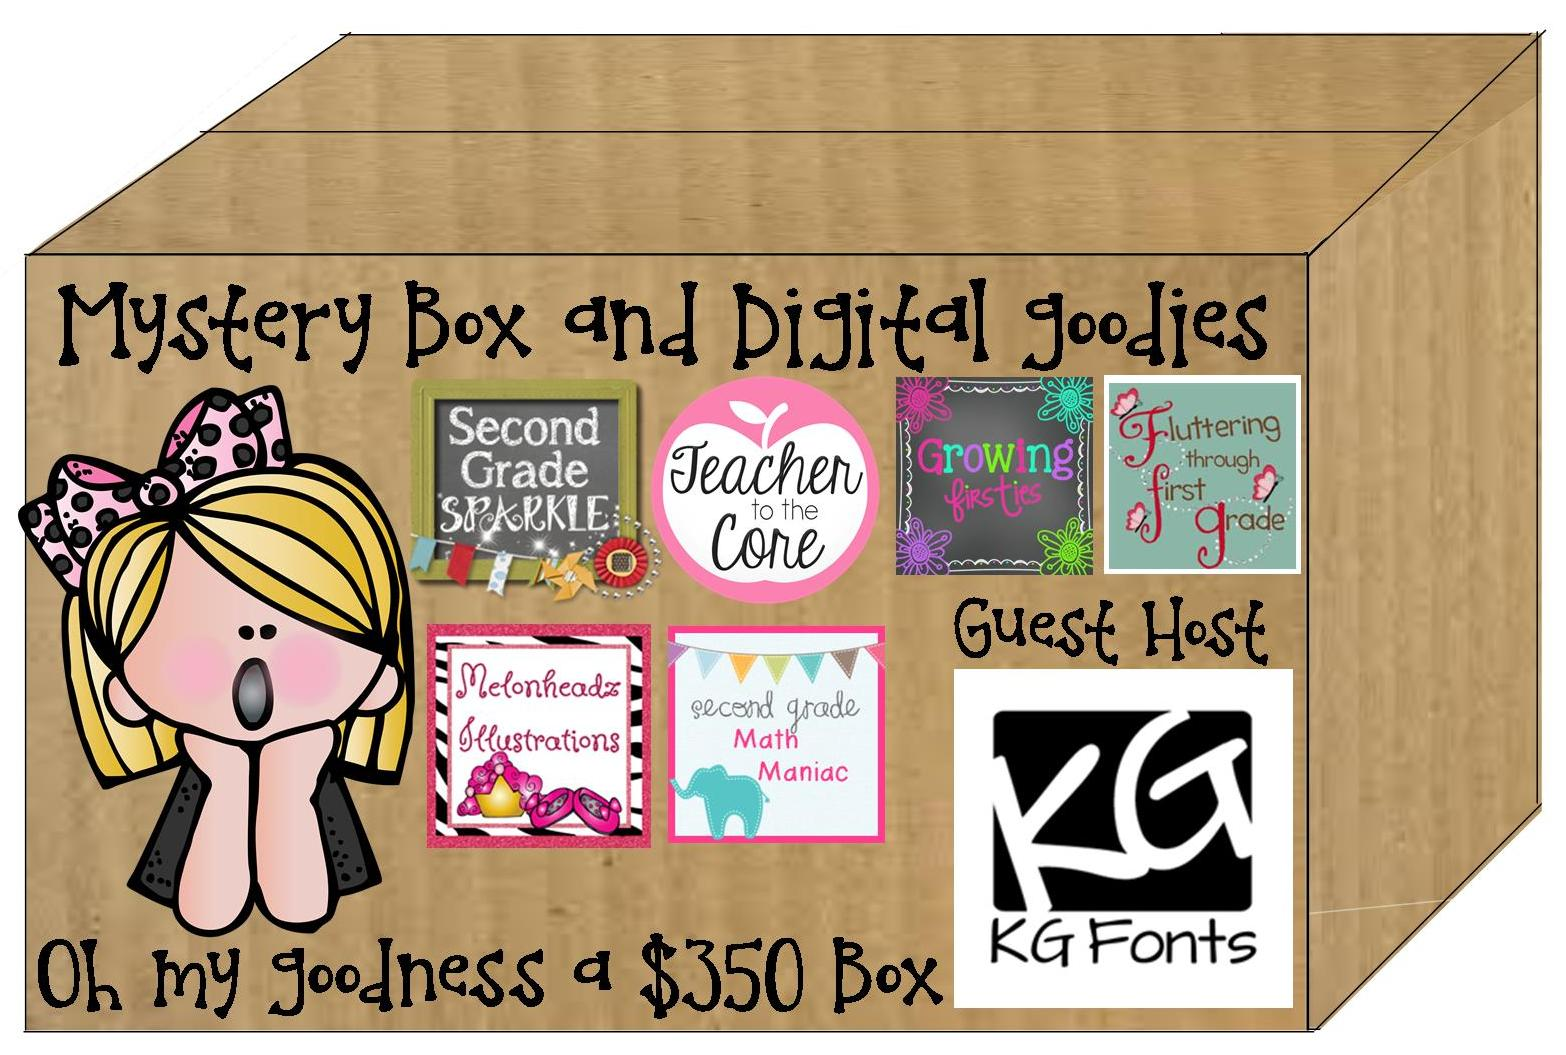 http://www.flutteringthroughfirstgrade.com/2014/01/the-mystery-box-is-back-with-bang.html